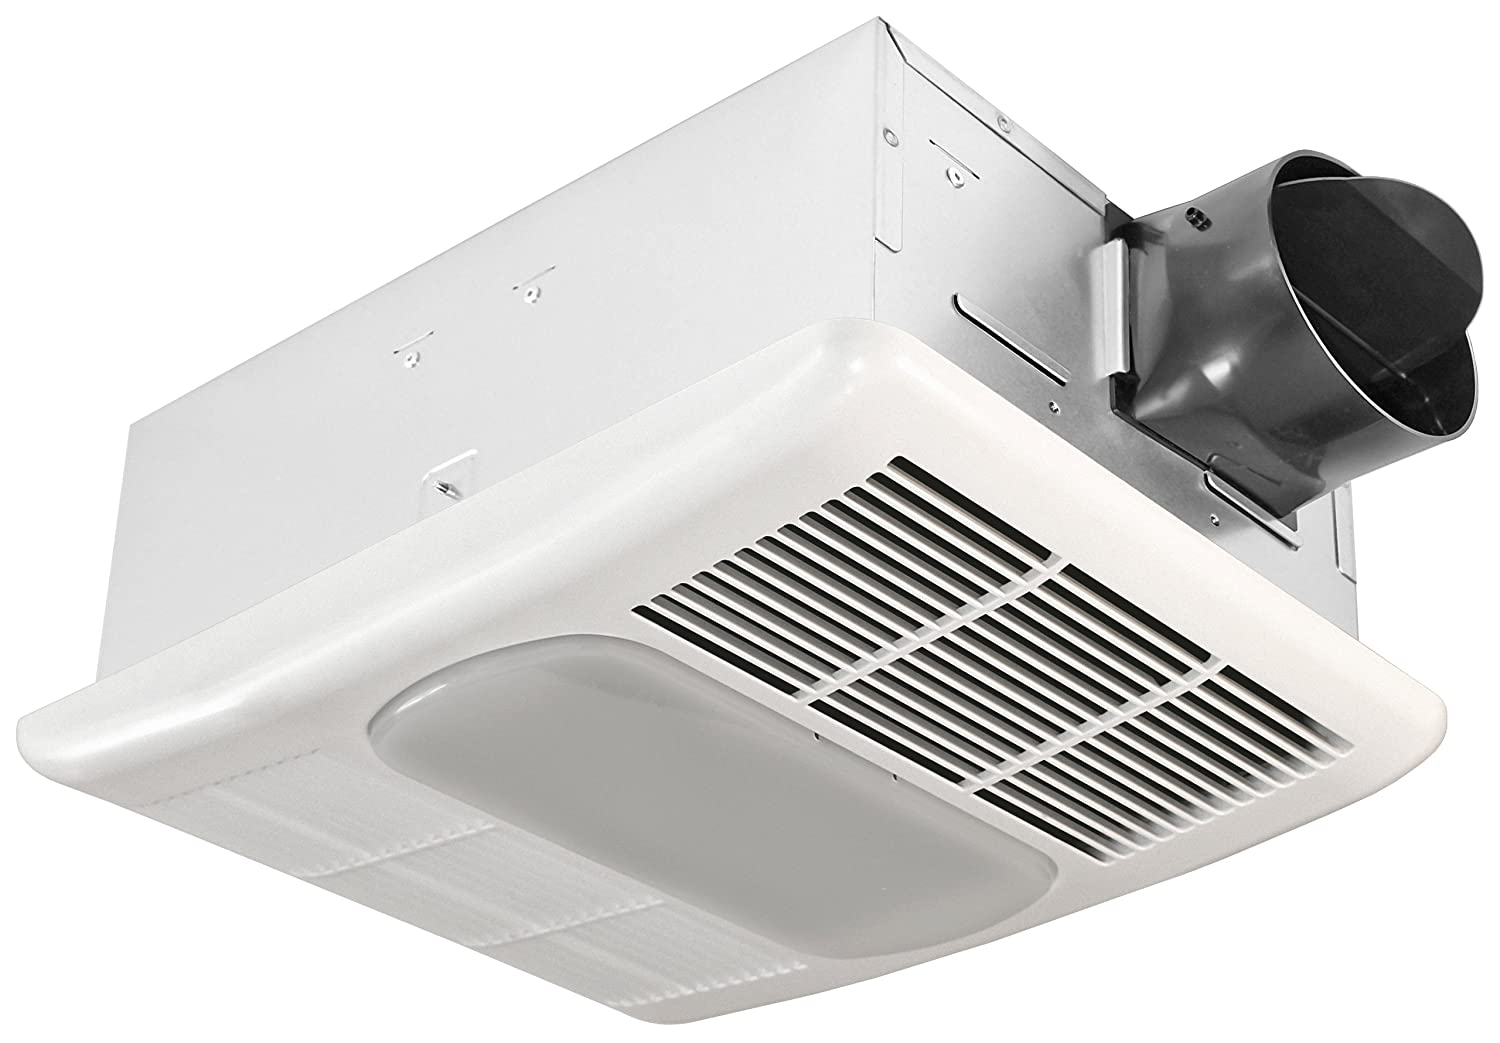 The Top Fan And Ventilation Systems Safetycom - Bathroom exhaust fan with pull chain for bathroom decor ideas